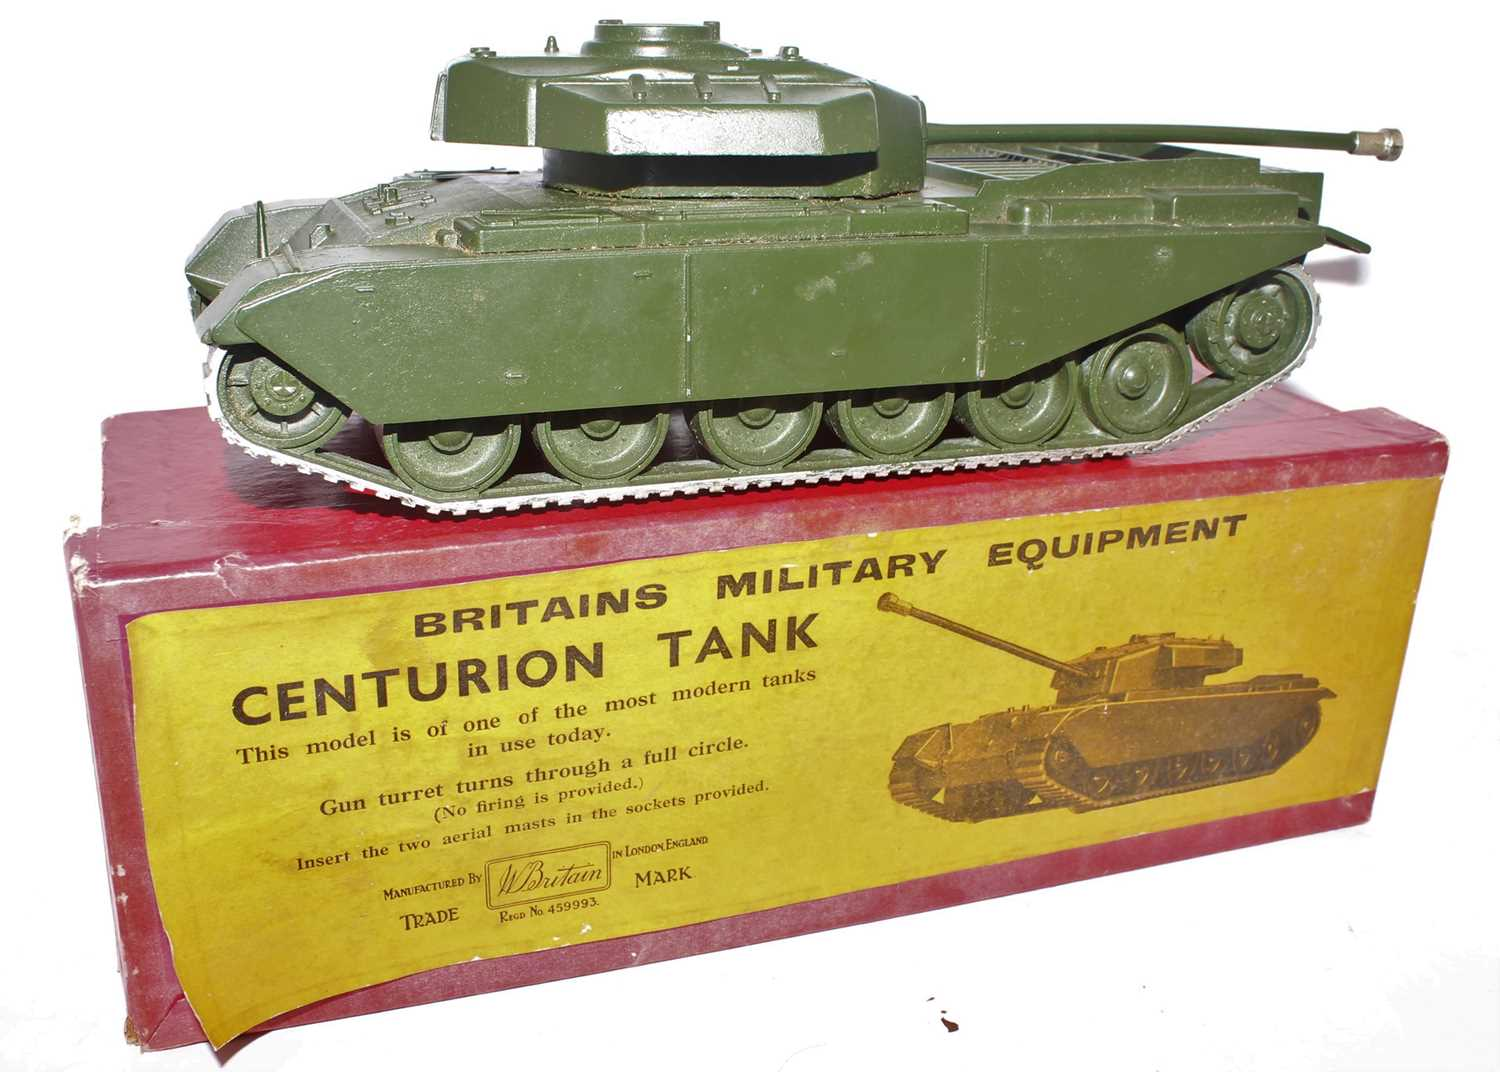 A Britains set No. 2150 Centurion tank comprising of military gloss green body with silver tracks, - Image 2 of 2